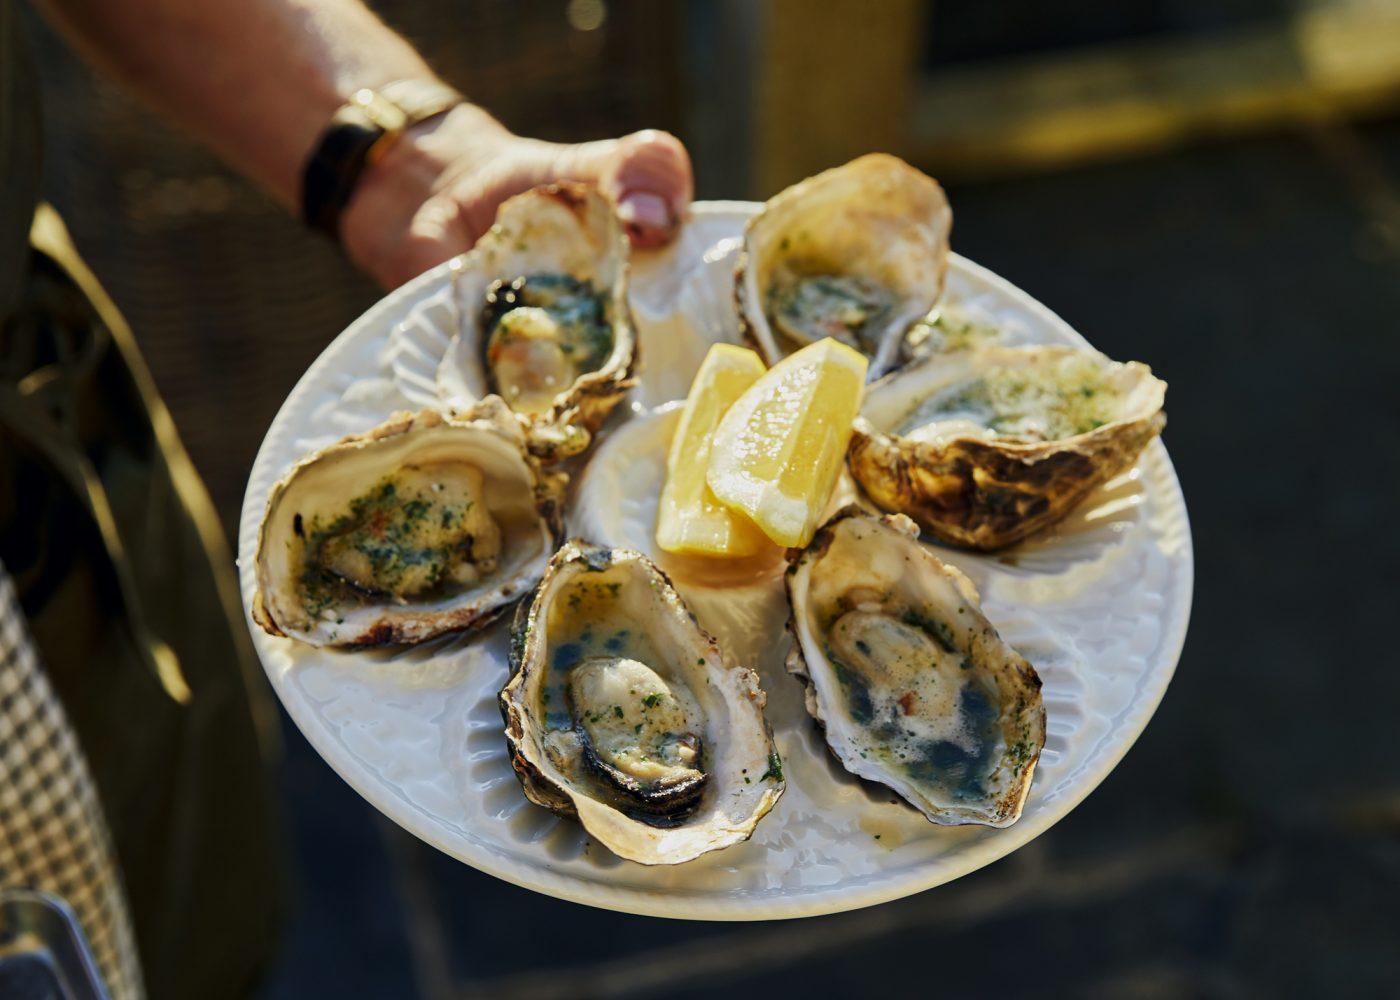 Serving up fresh local oysters. Louise & Tim's supper club at Treverra Farm, Cornwall. Photo by Emli Bendixen.